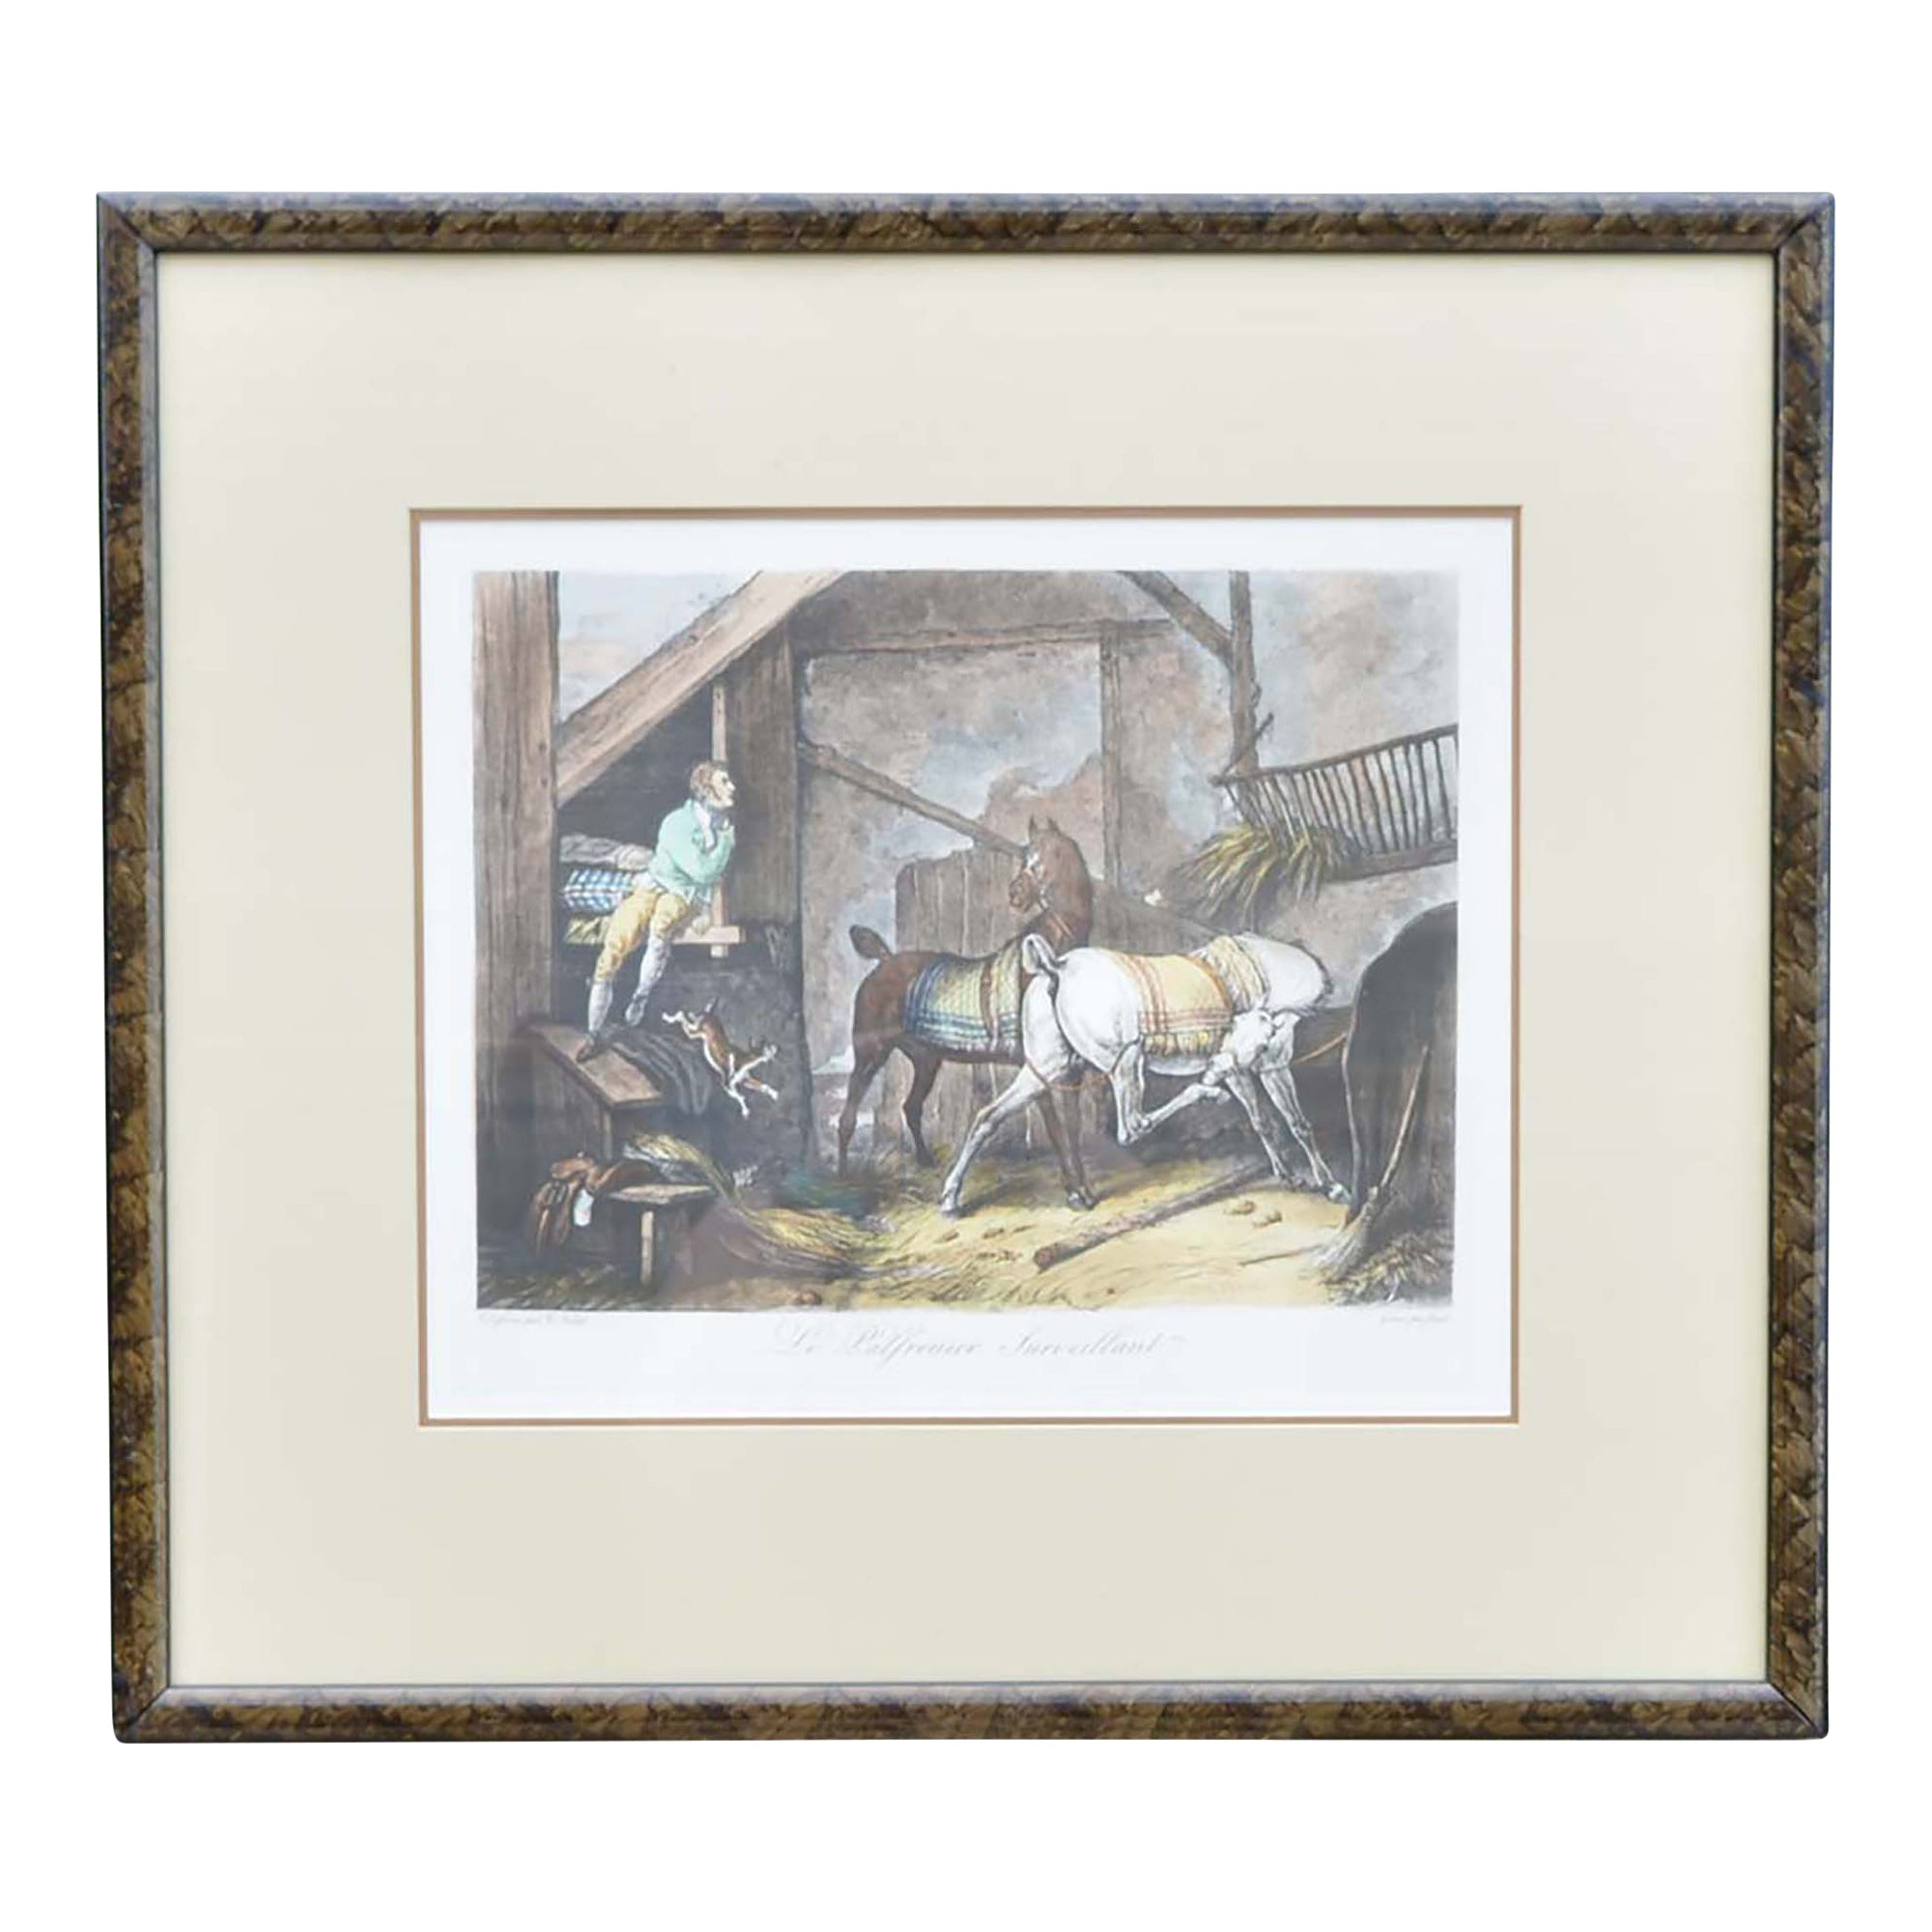 Framed Print of Horse Stable Scene by Carle Vernet